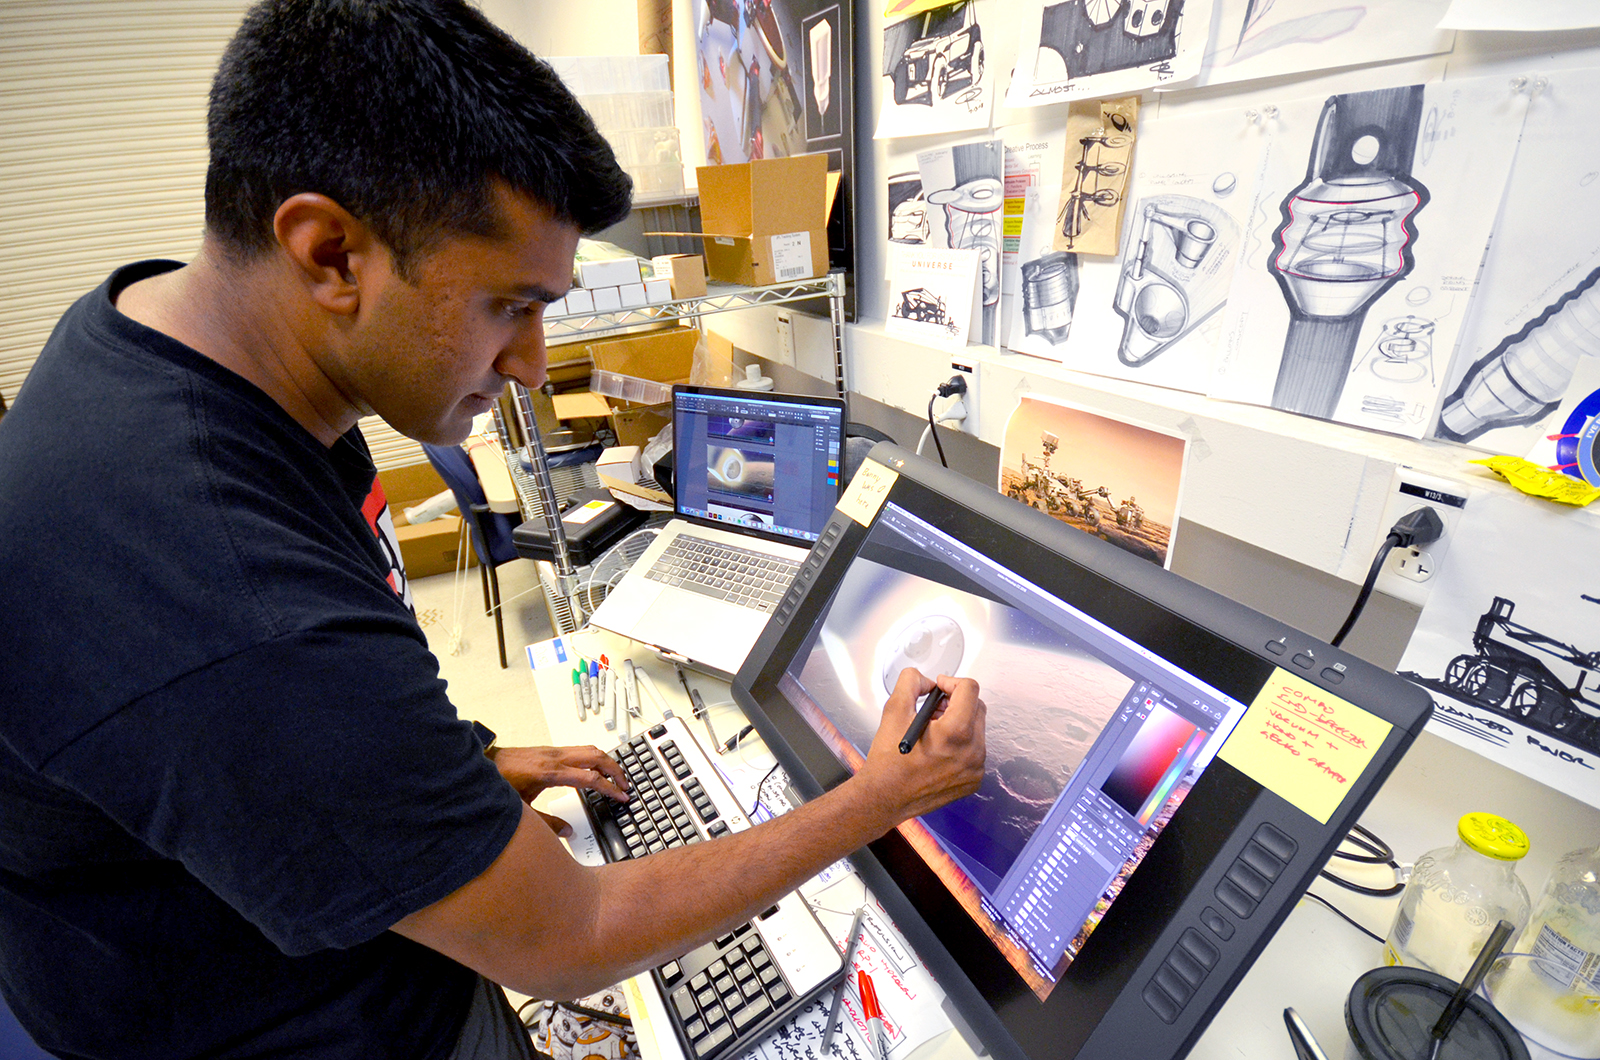 Omar Rehman works on an illustration at JPL